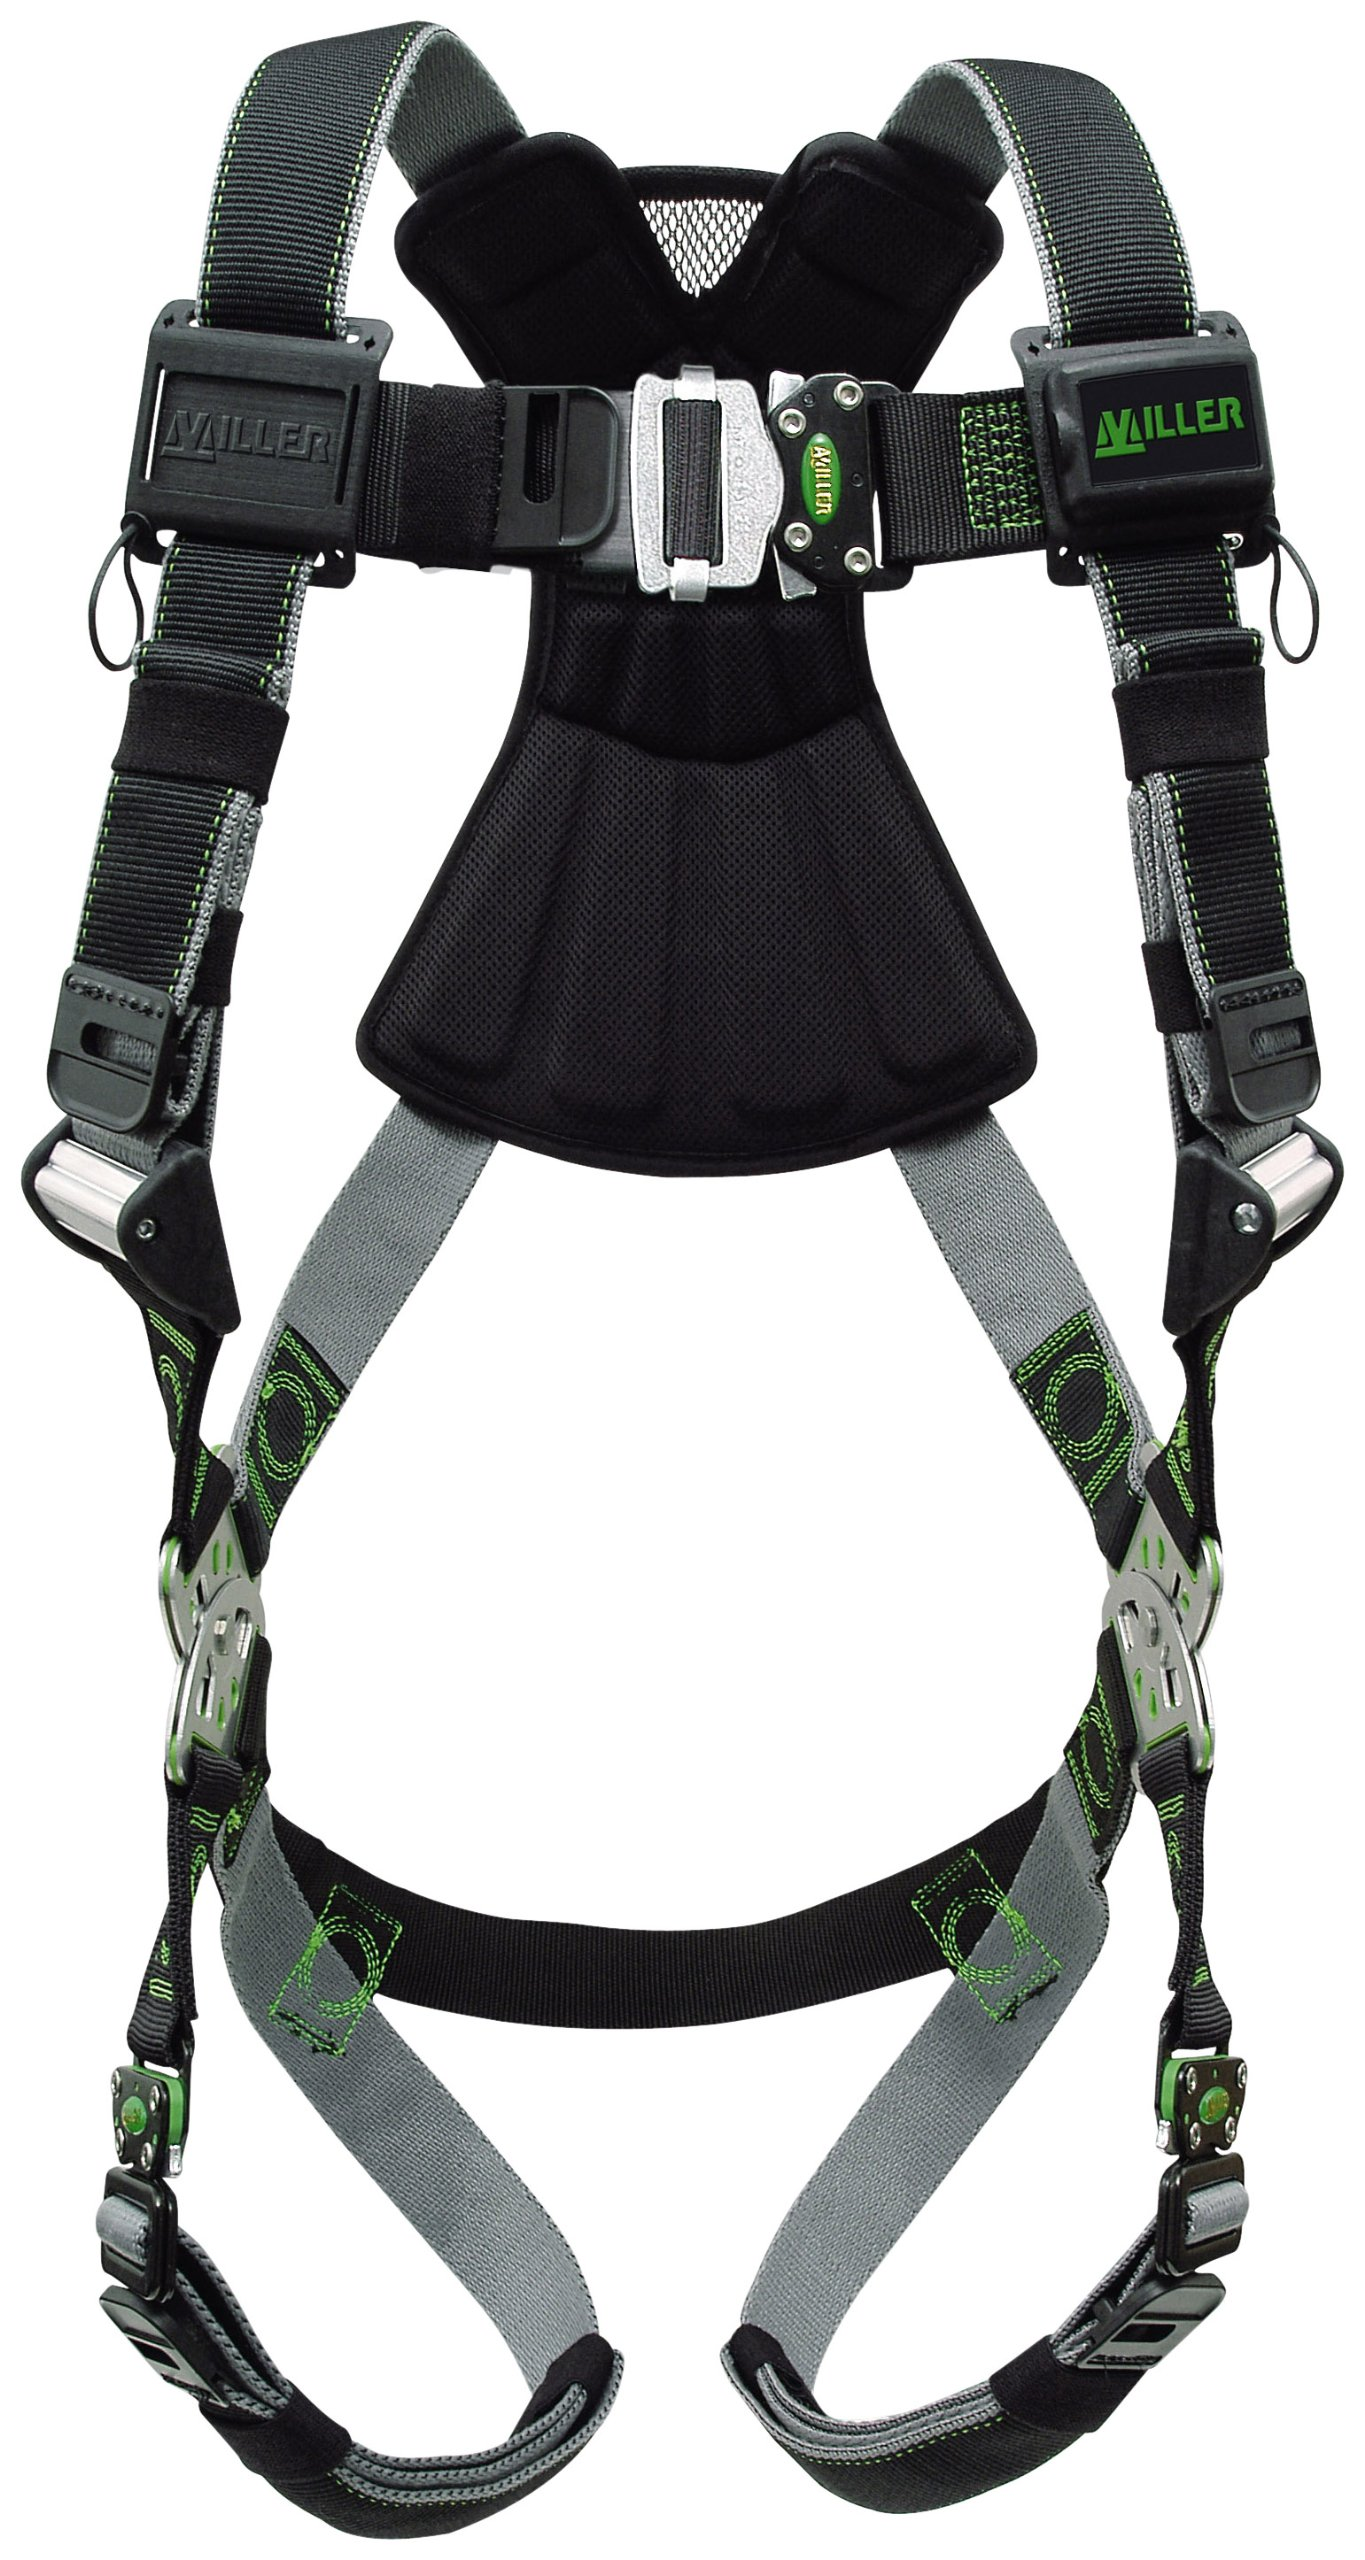 Miller Revolution Full Body Safety Harness with Quick Connectors, Universal Size-Large/XL, 400 lb. Capacity (RDT-QC/UBK) by Miller